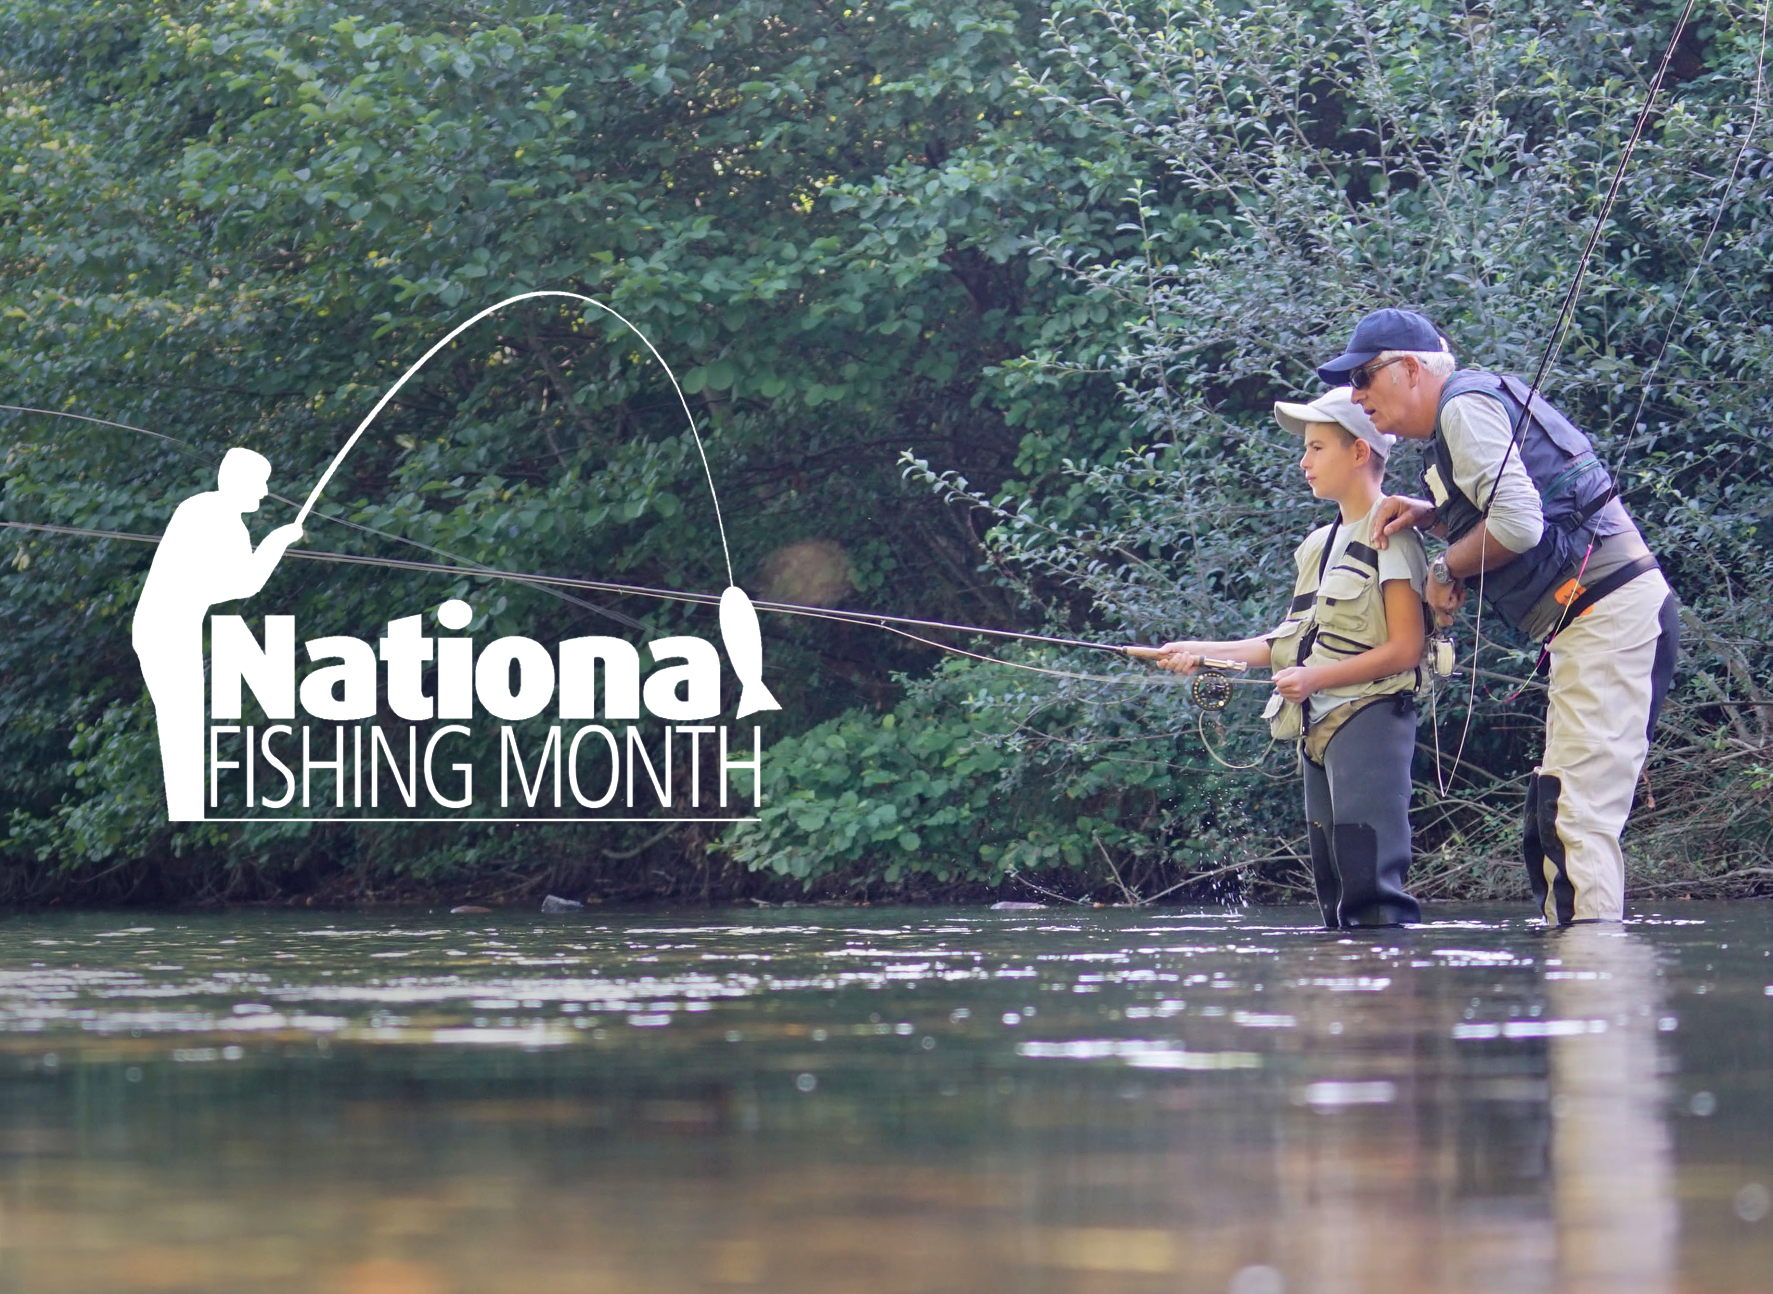 National Fishing Month 2019